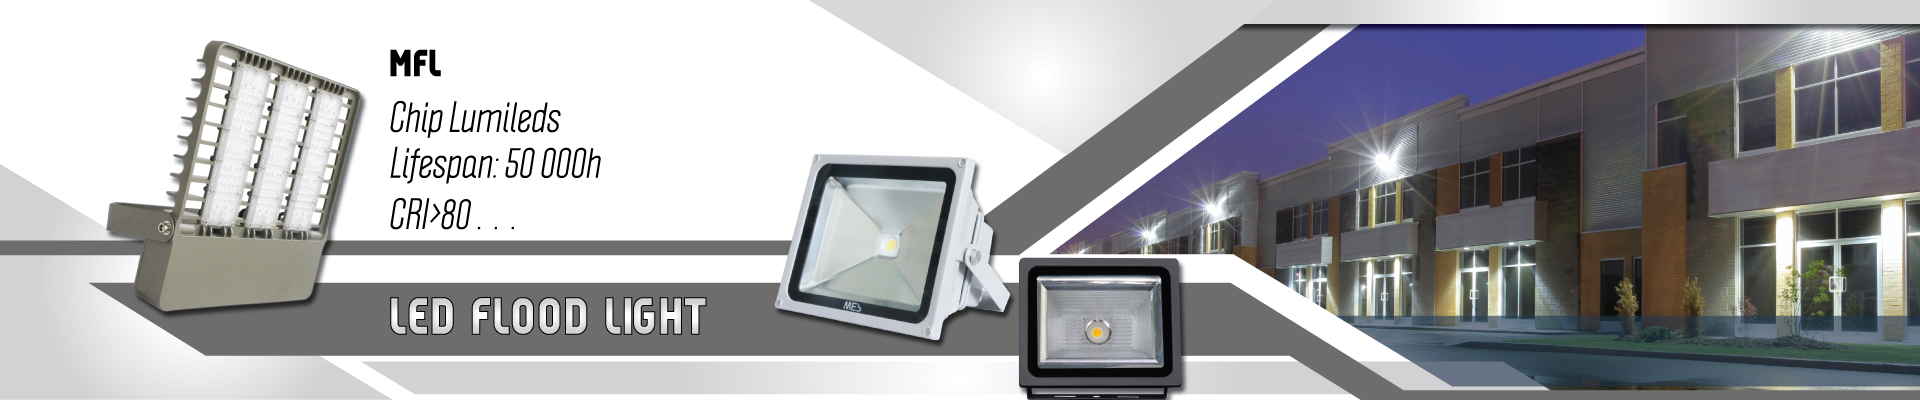 LED Flood Light 50W</br>MFL621